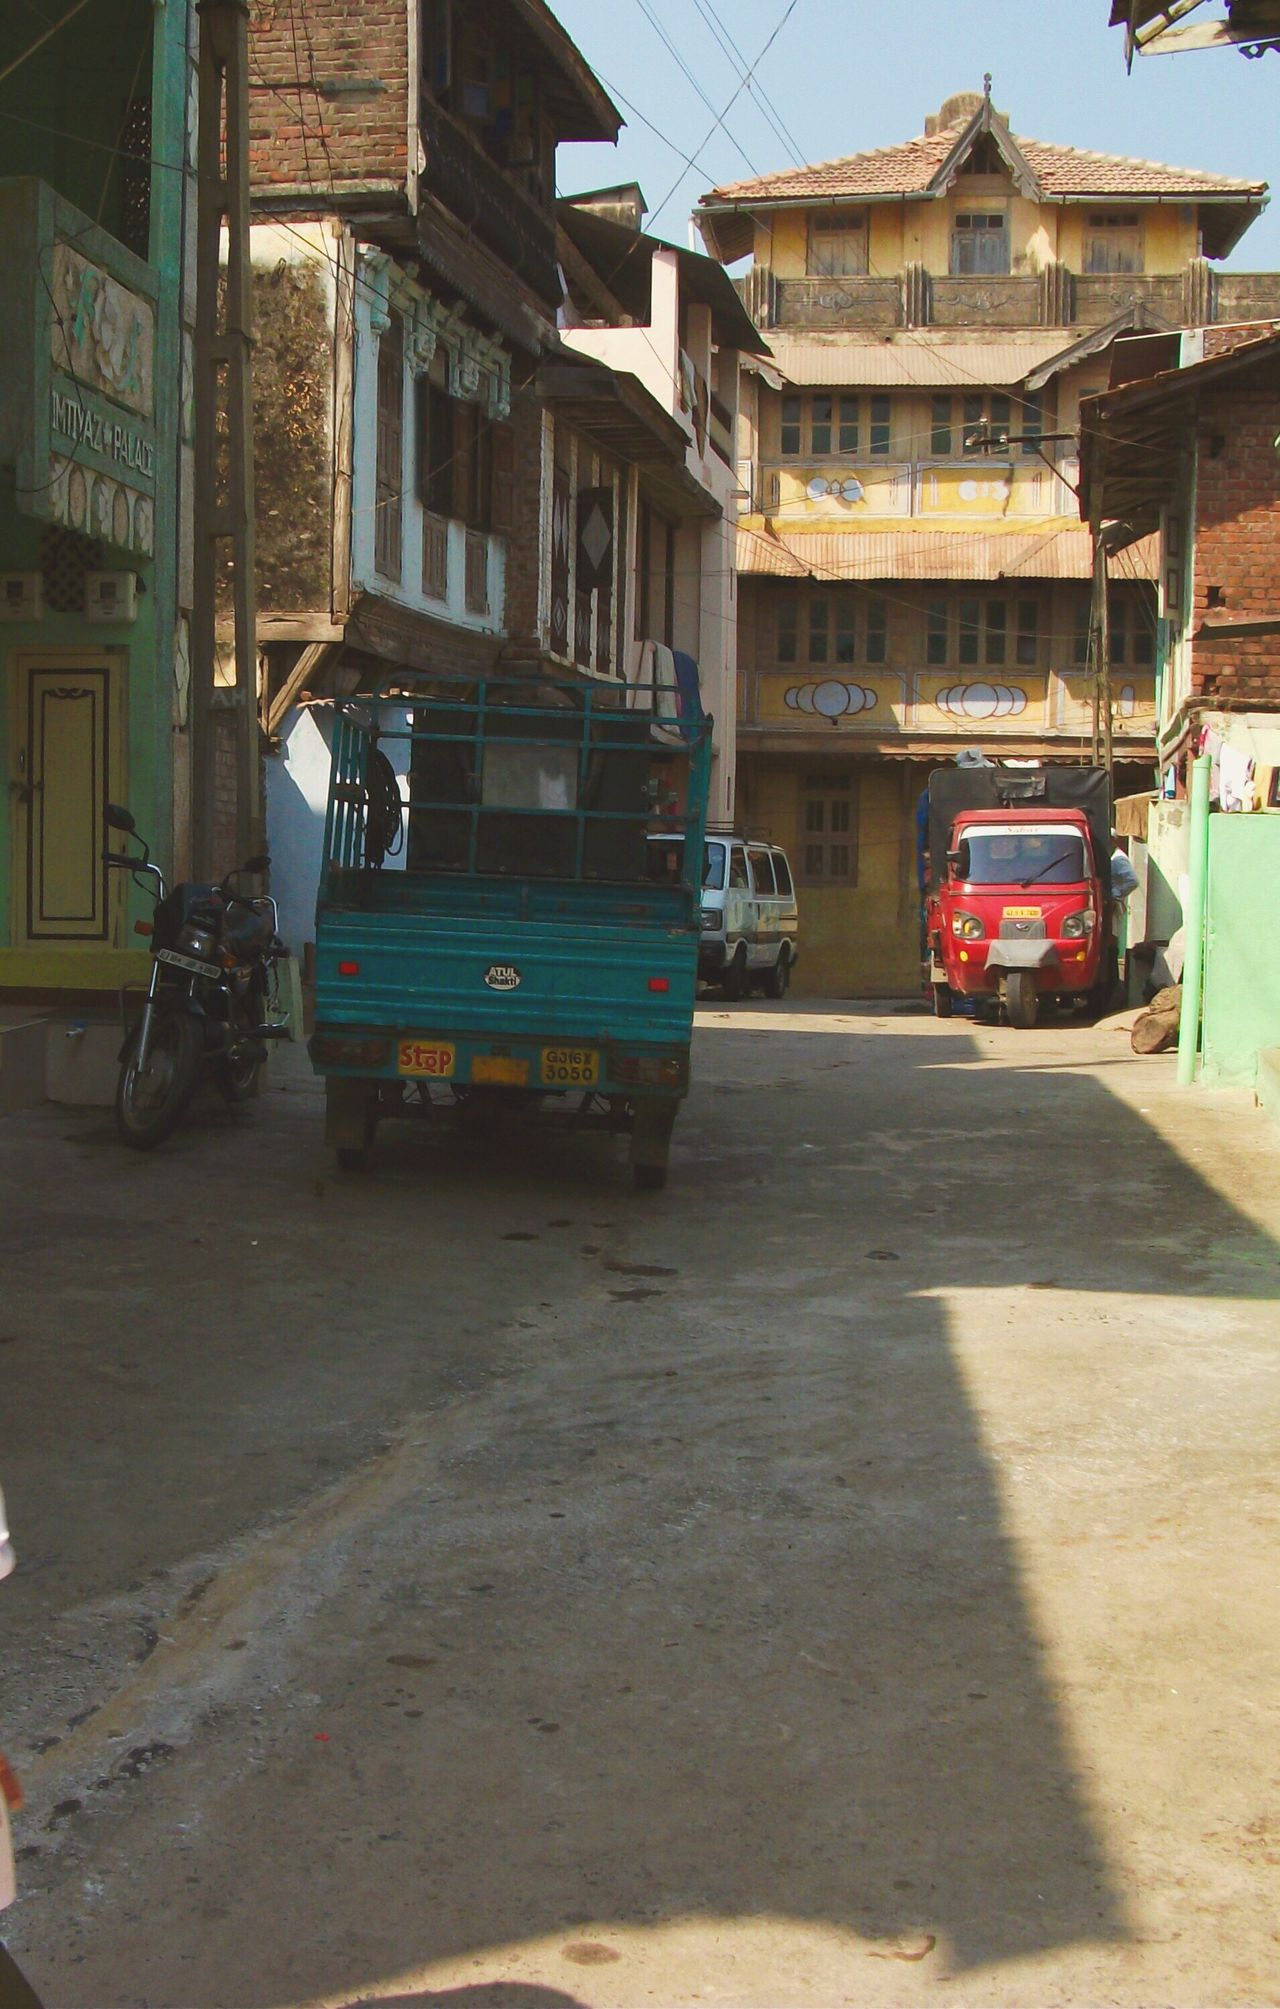 India Built Structure Architecture Transportation Building Exterior Land Vehicle Mode Of Transport City Stationary No People Day Outdoors Urbanphotography Urban Streetphotography Street Photography Street Memories Memory Lane Street Life Stree Photography